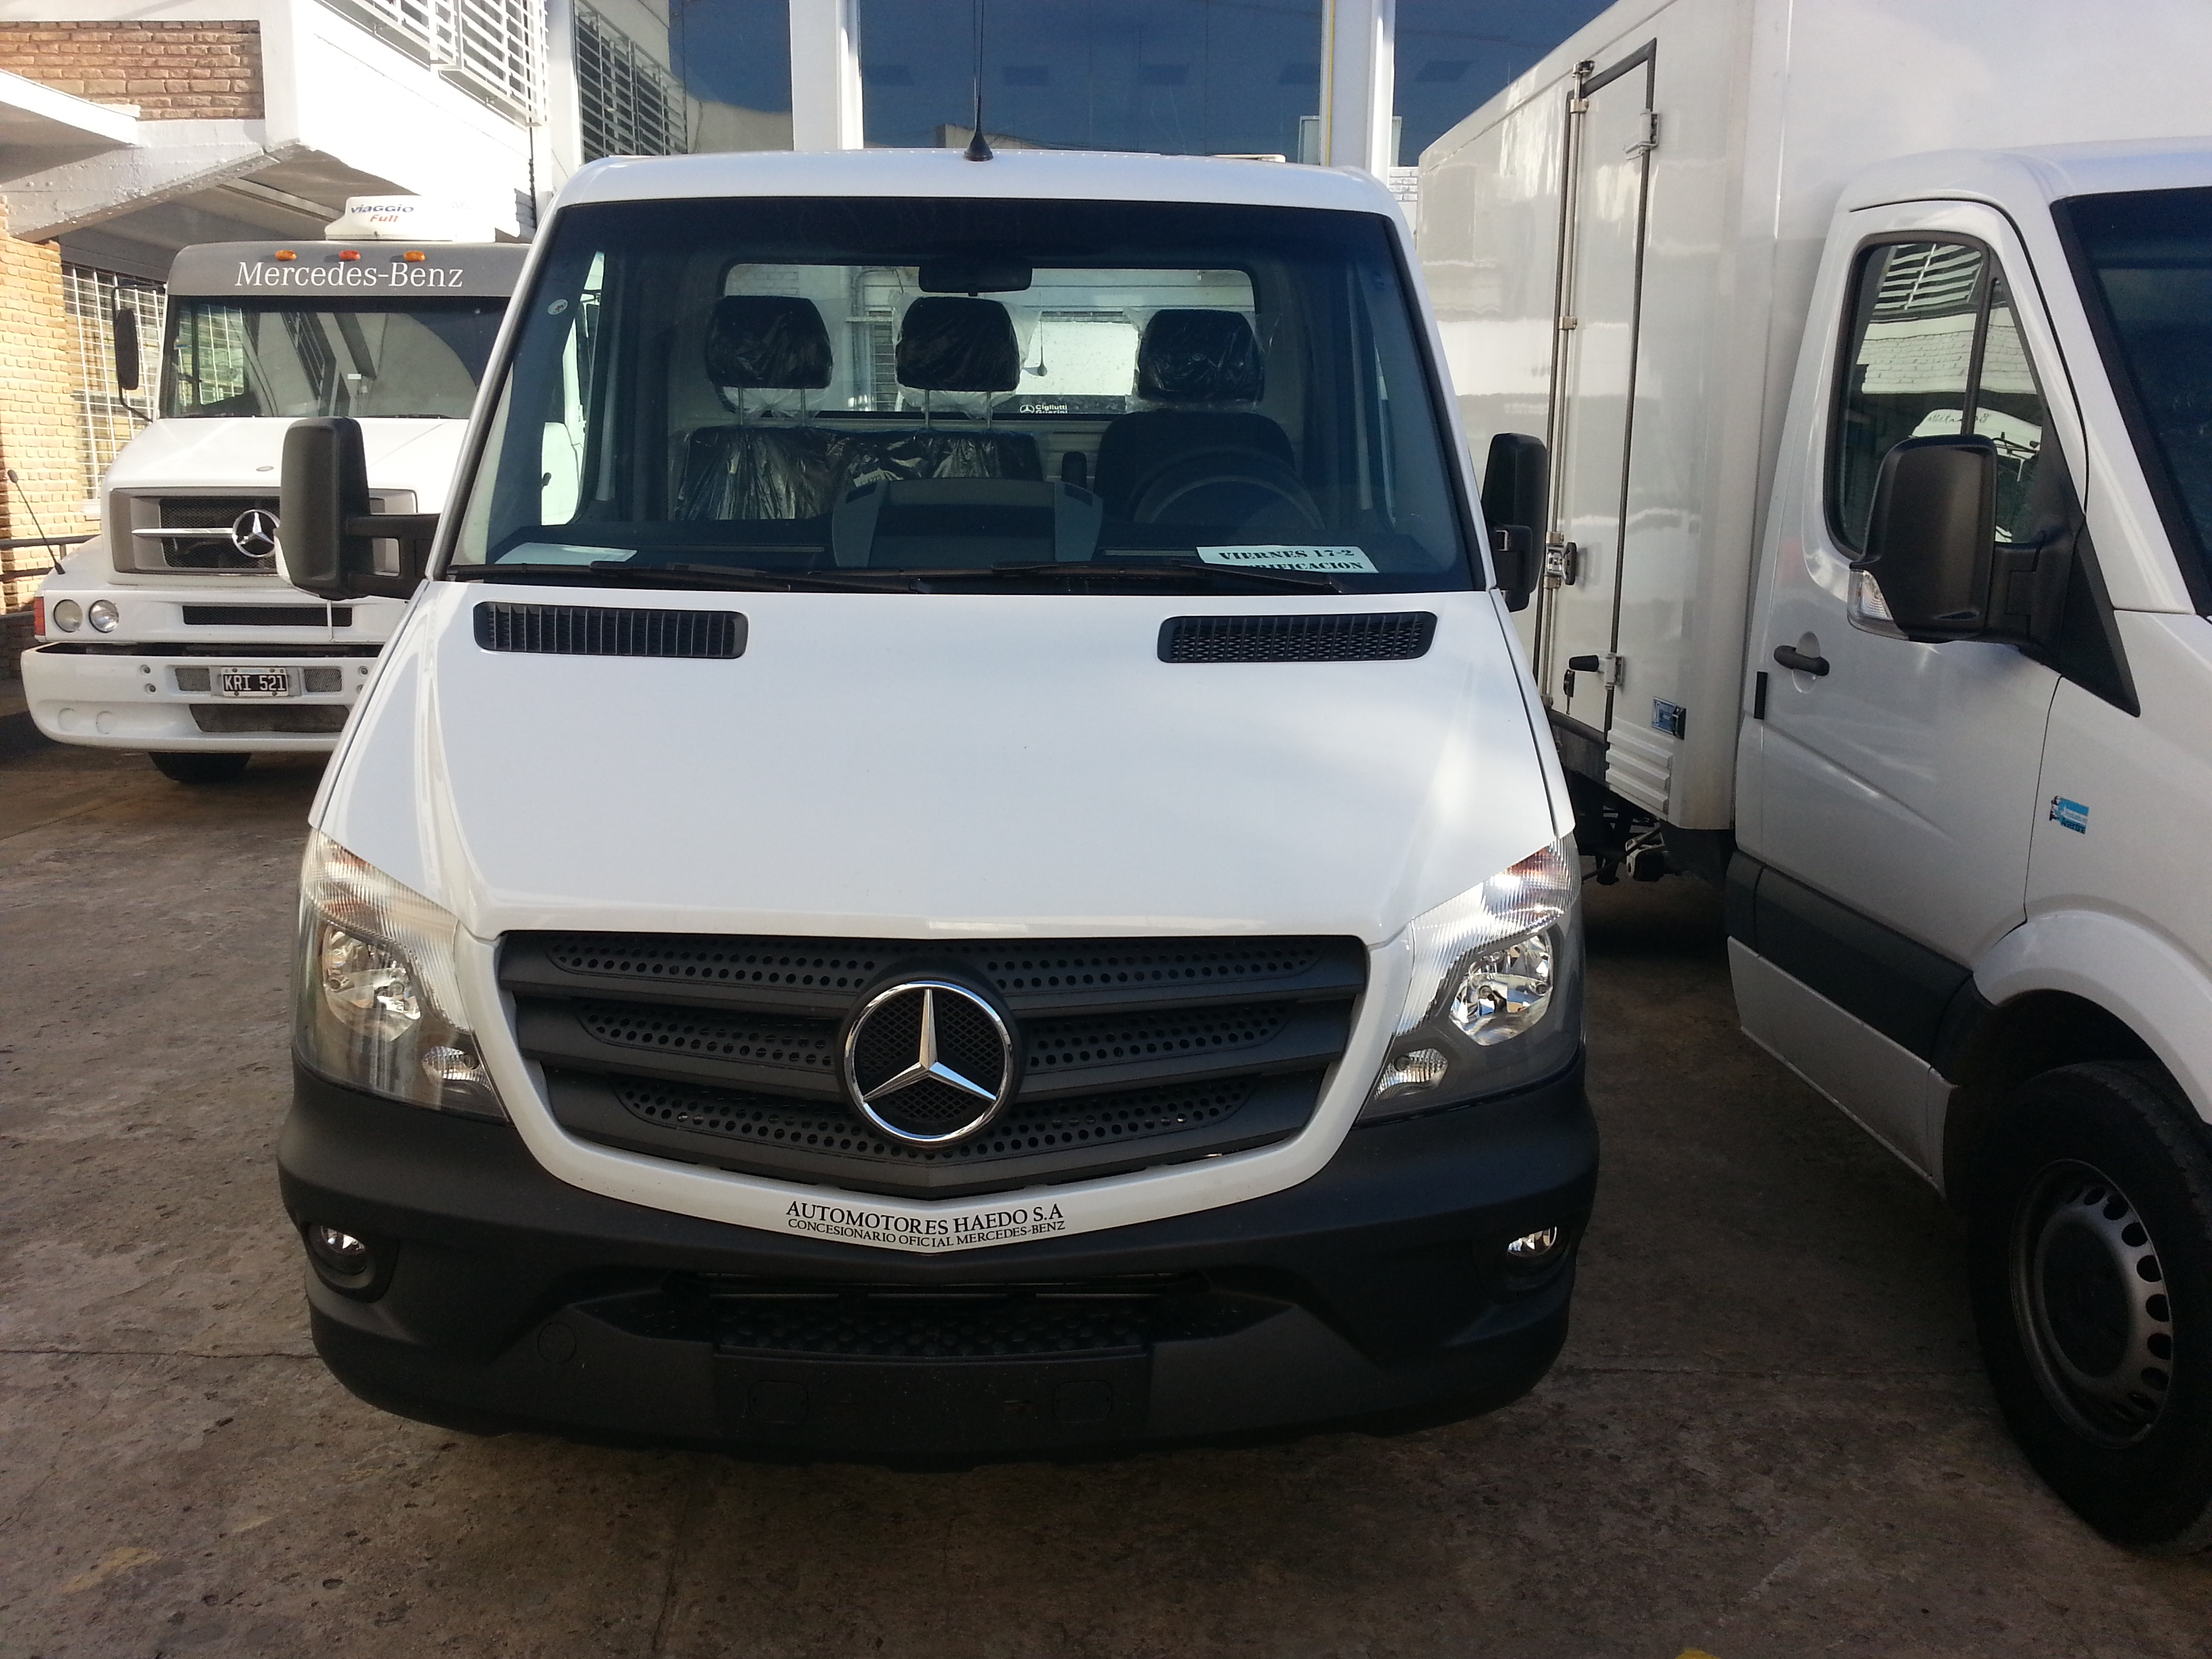 MERCEDES BENZ SPRINTER CHASIS